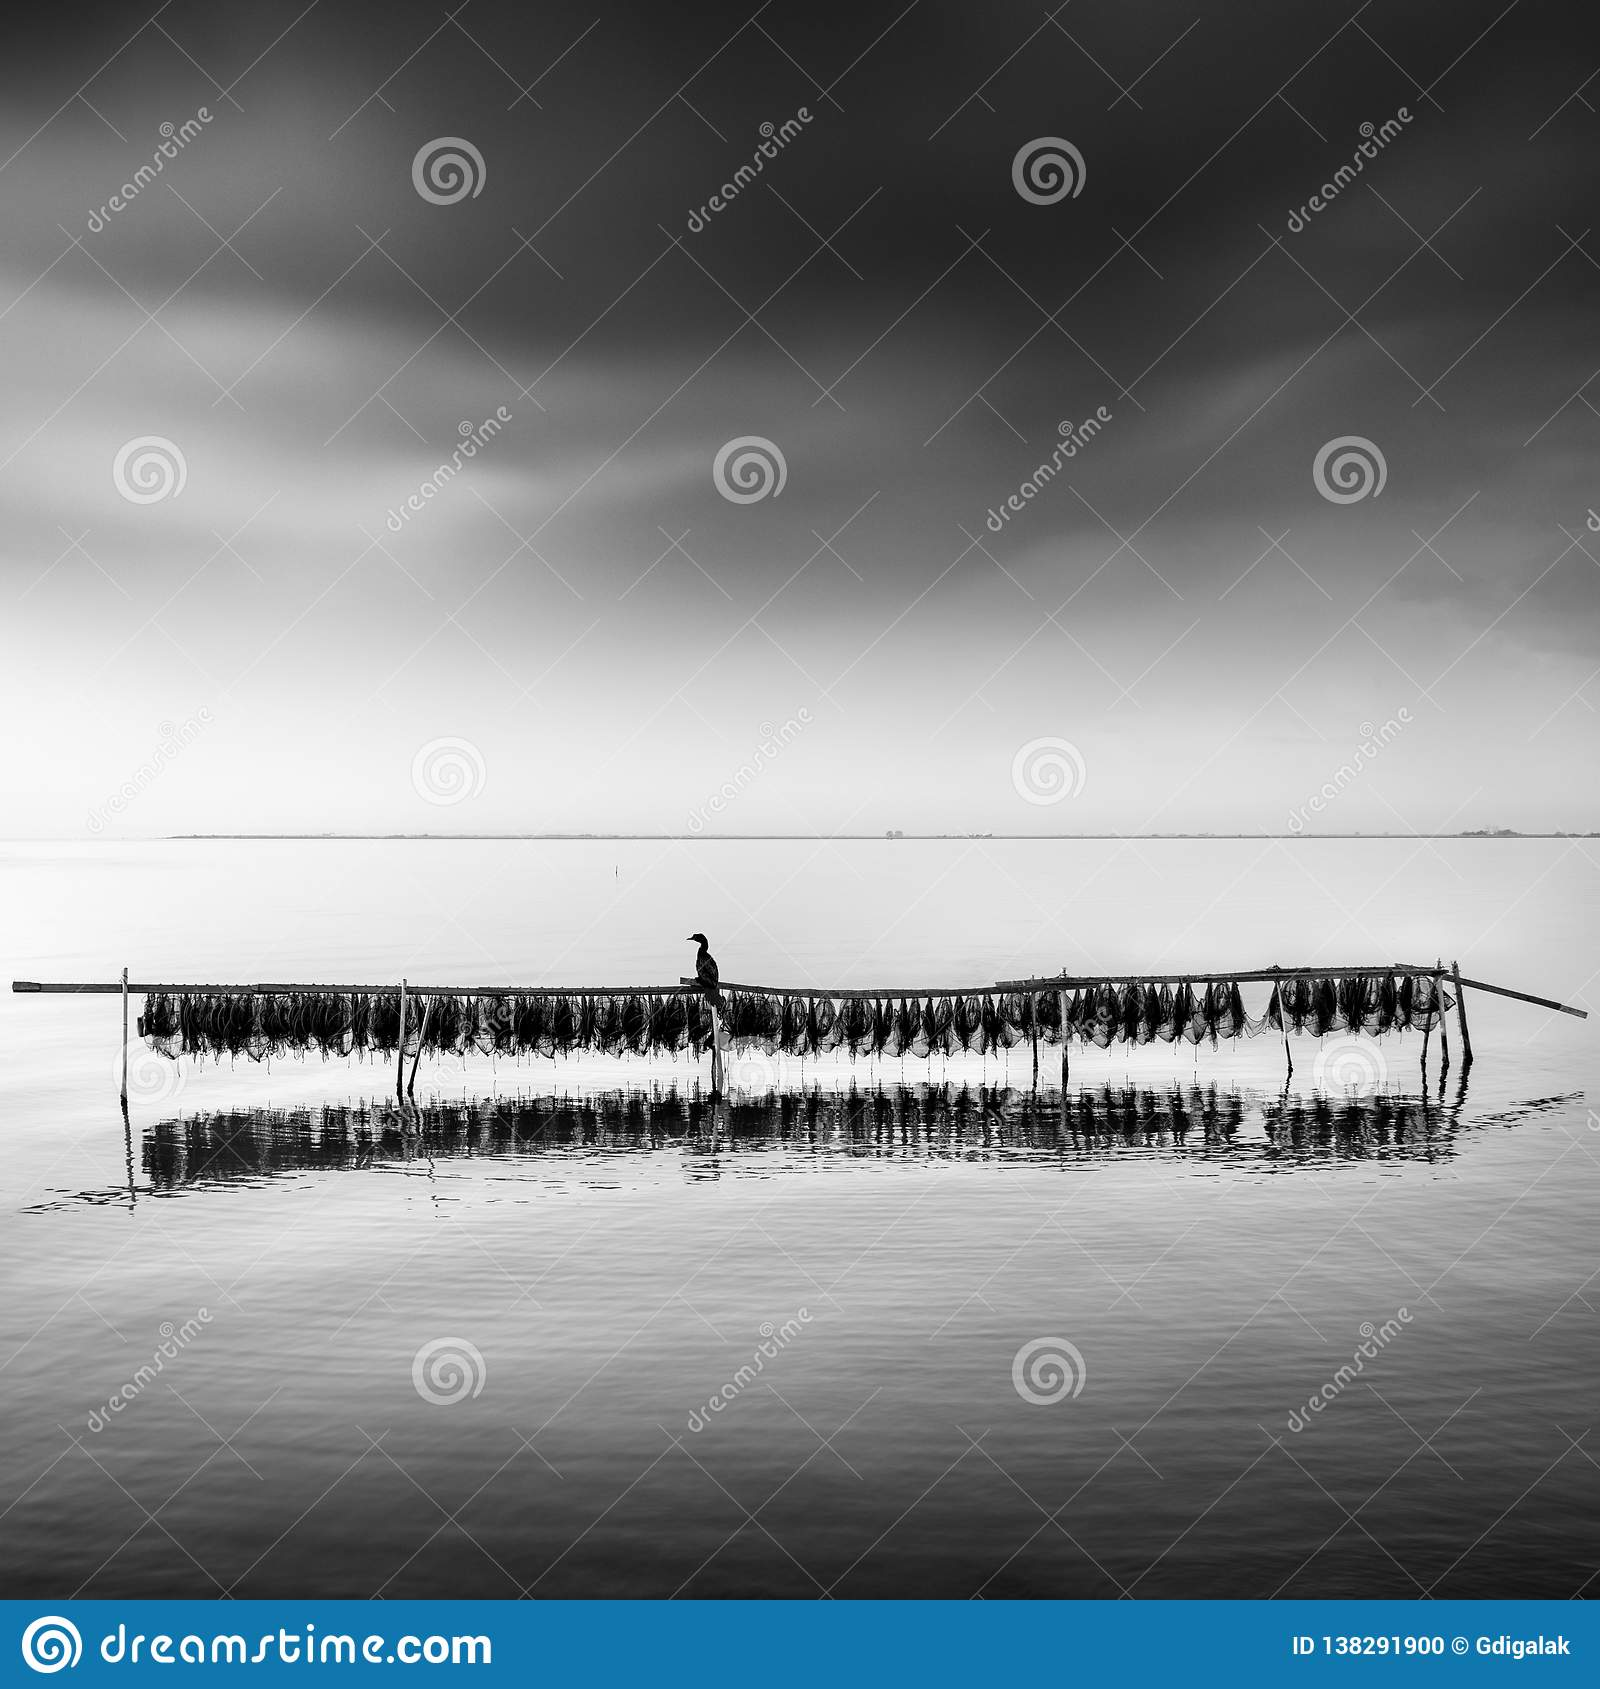 Minimal seascape with fishing nets